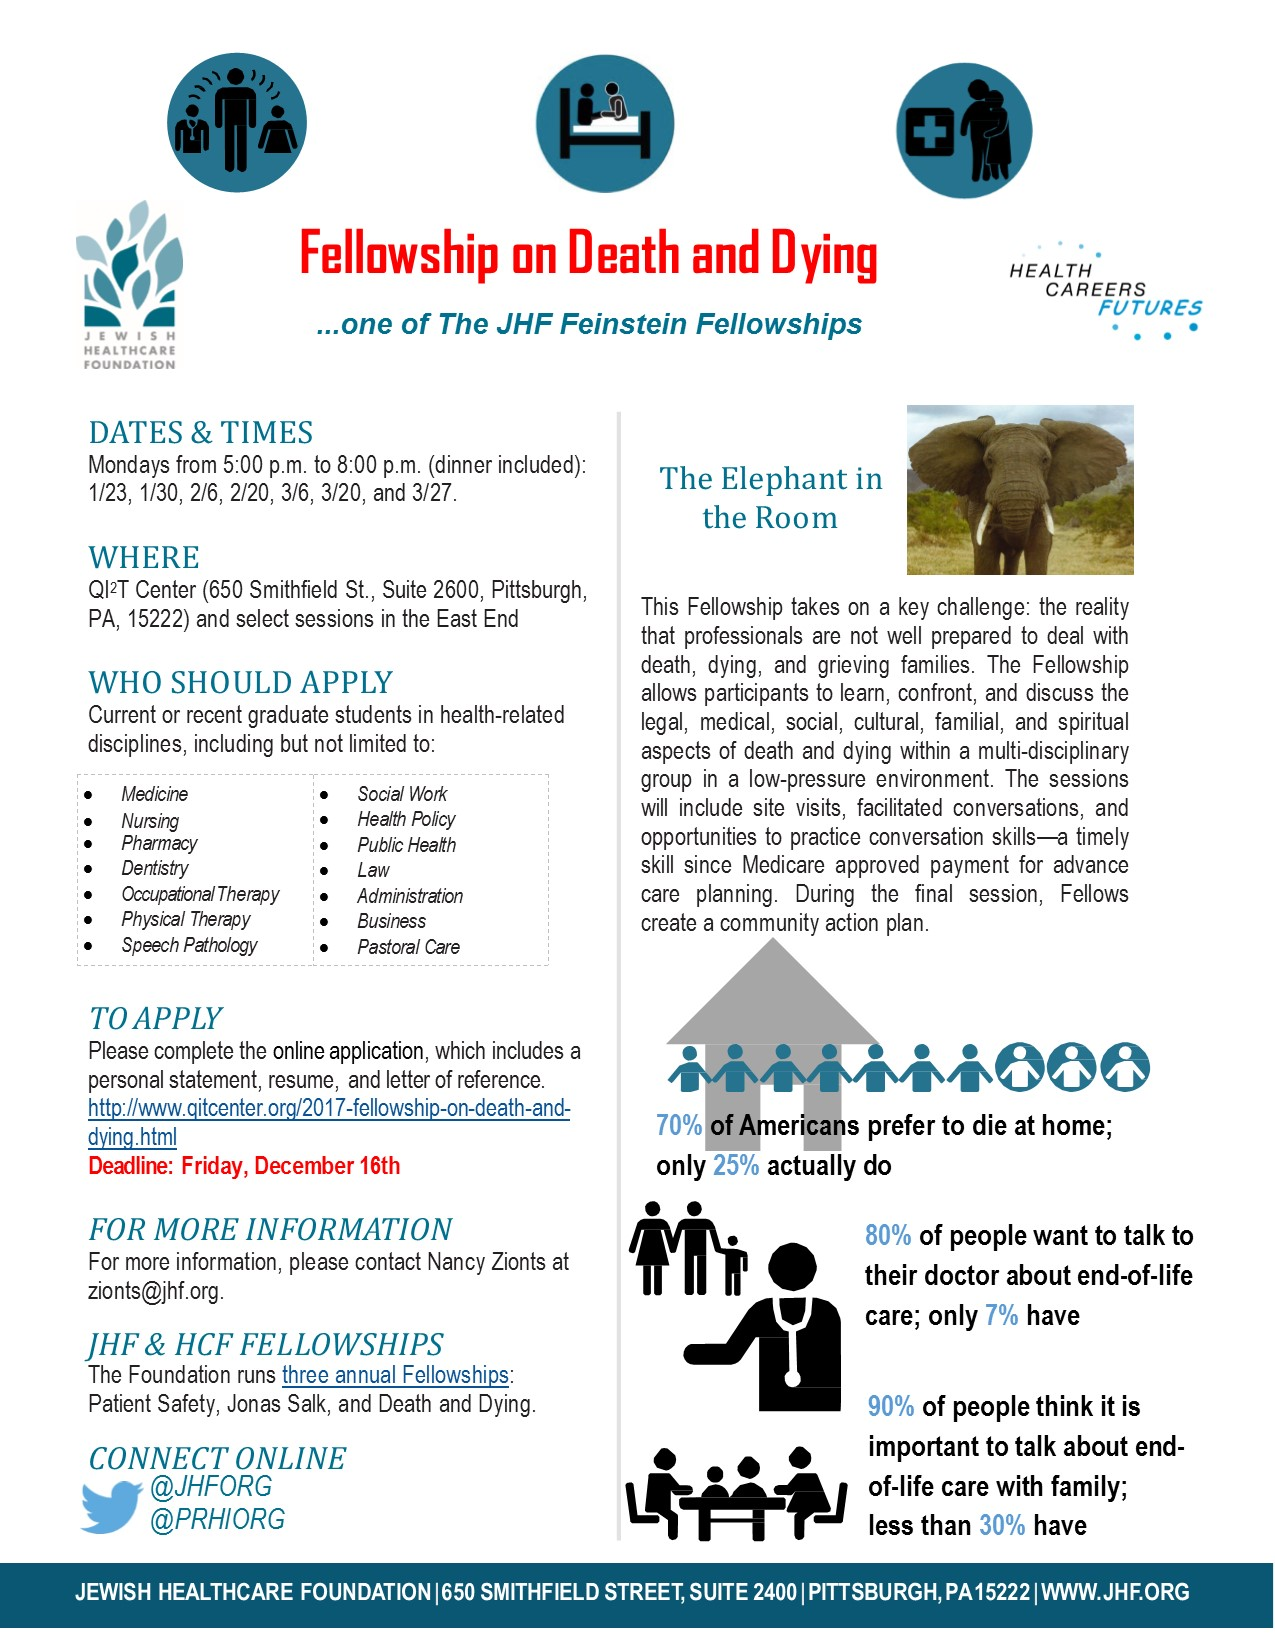 JHF Fellowship on Death and Dying Announcement – Applications Due by 12/16